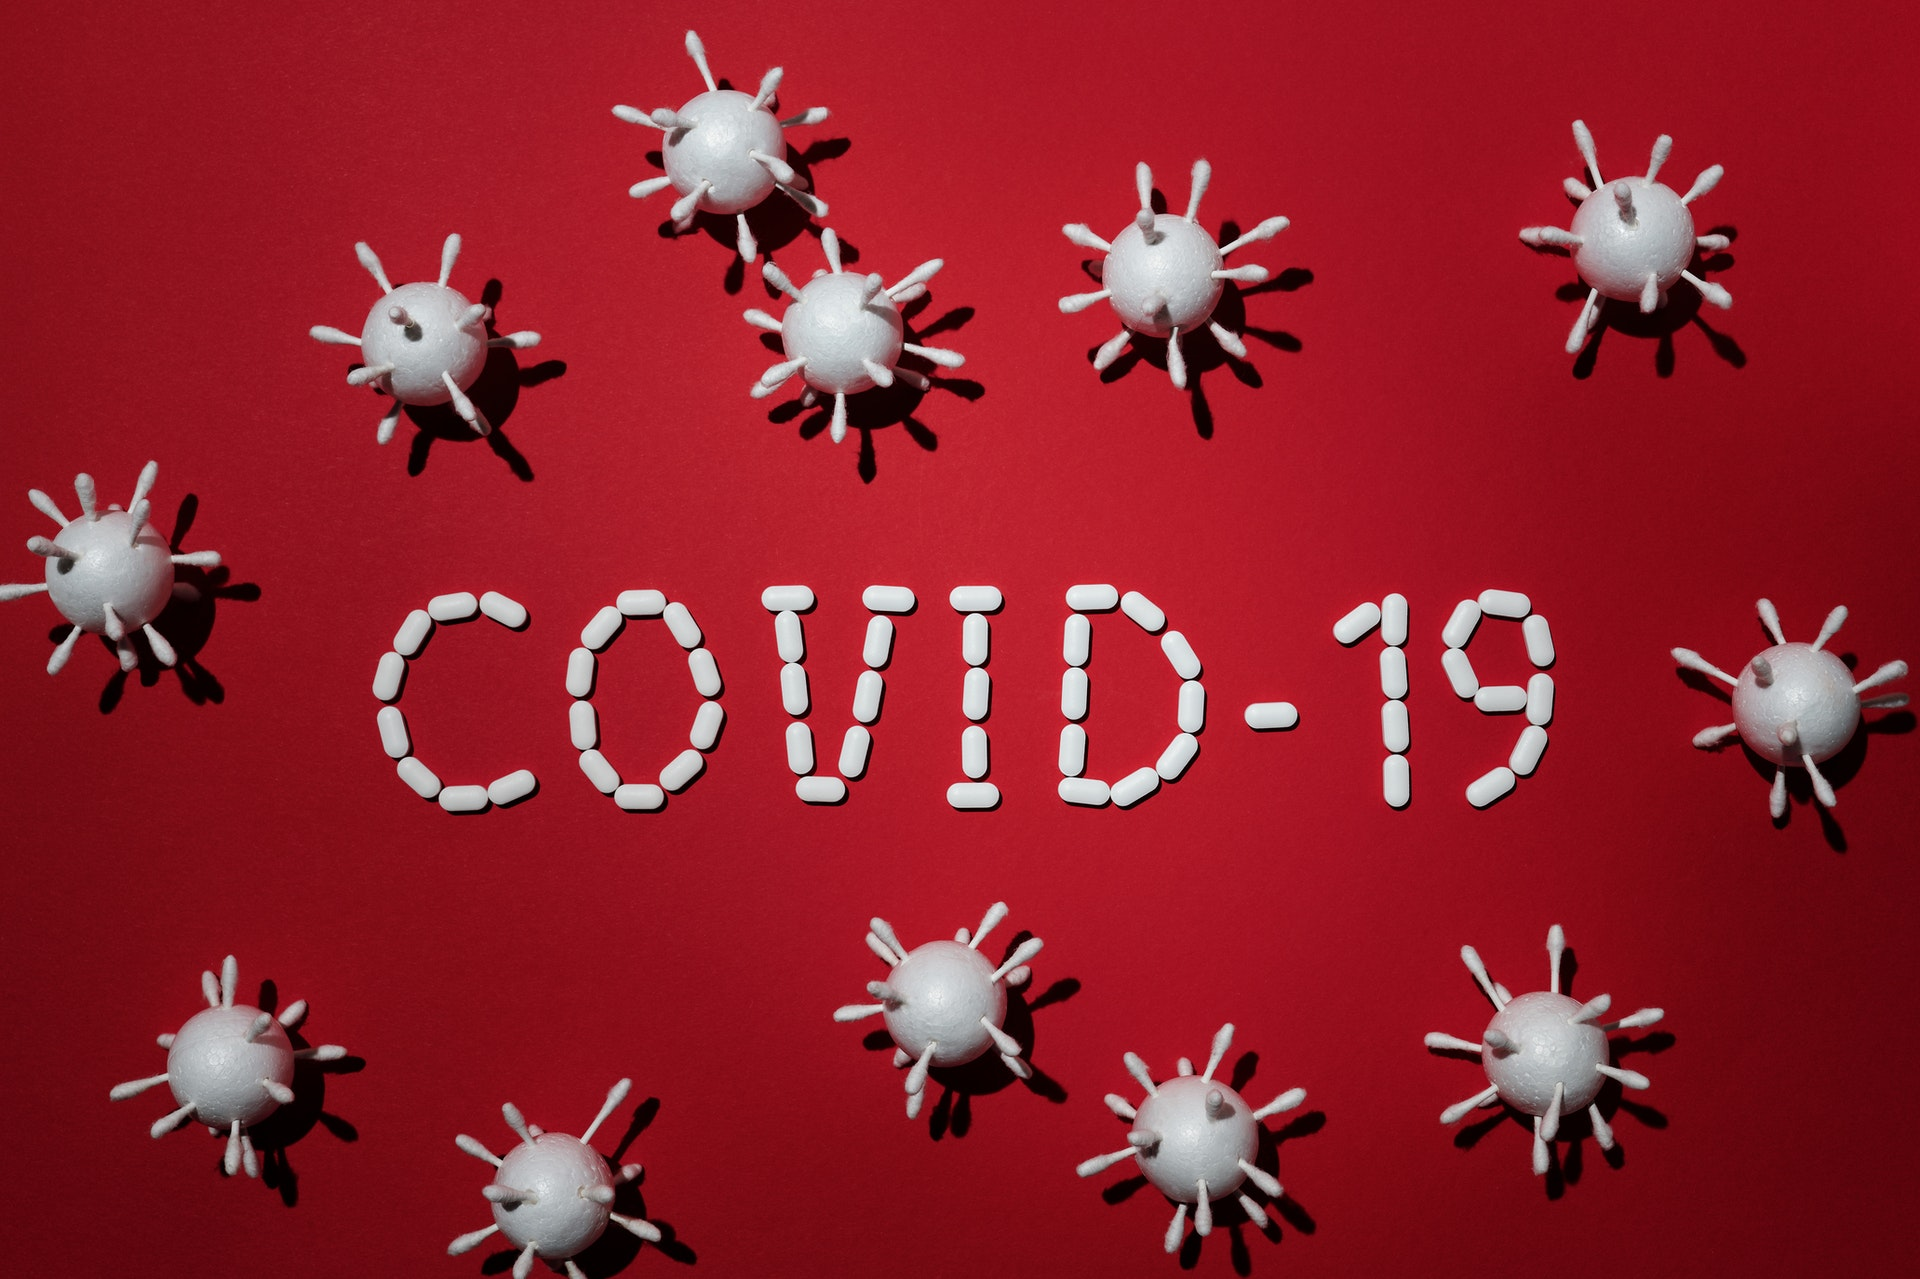 COVID-19 image of virus for dental emergency blog